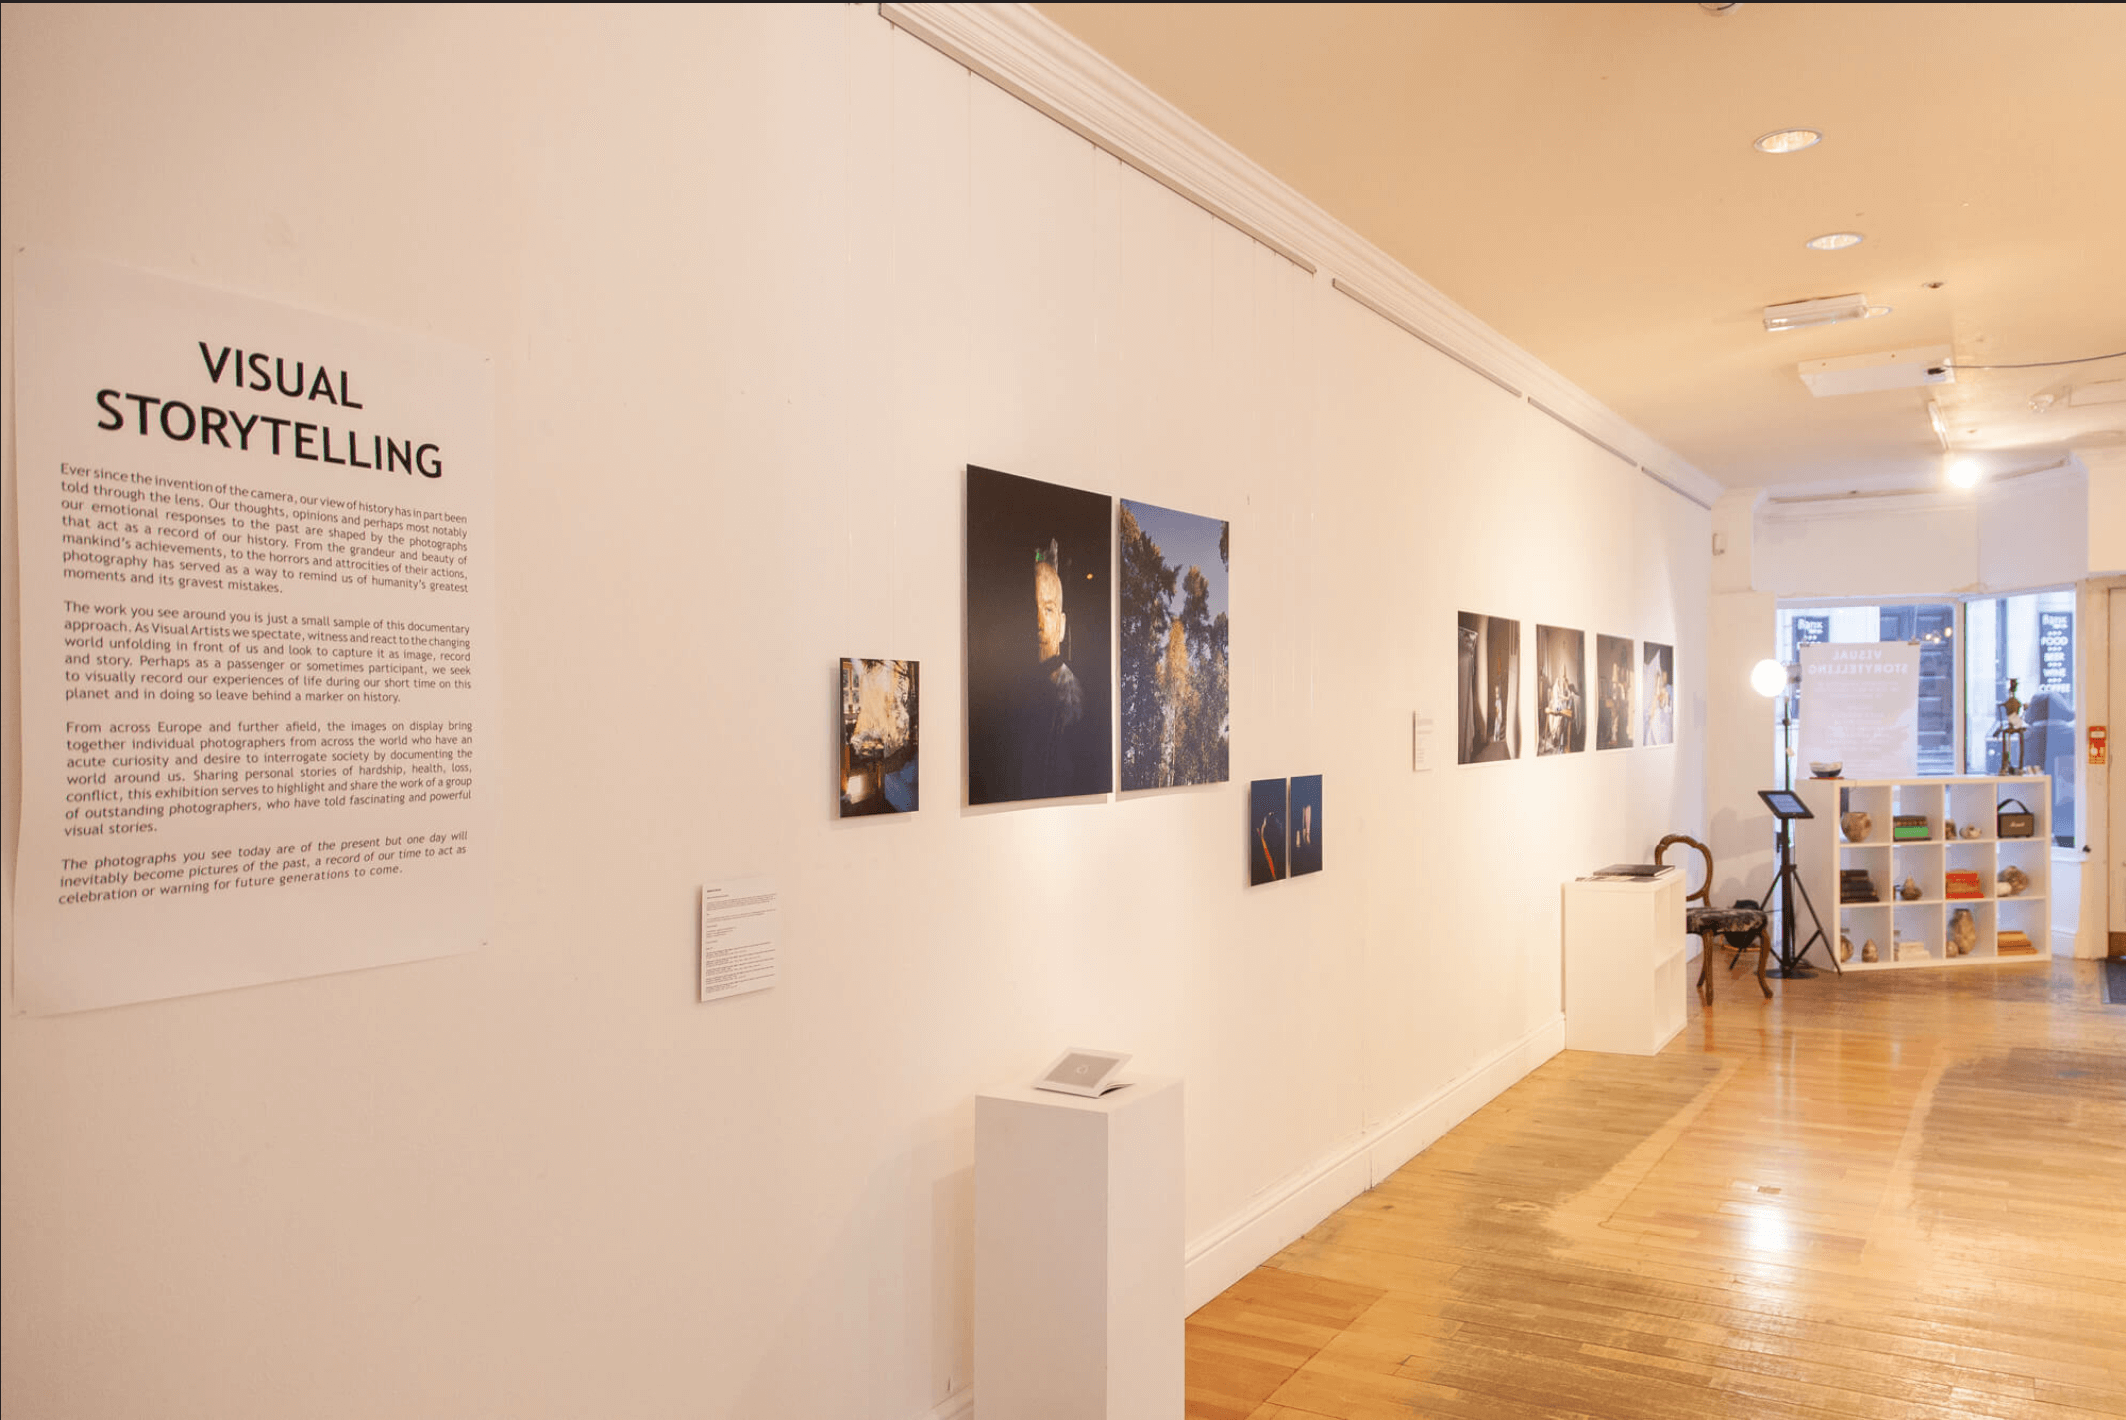 Curation: The South West Collective's Debut Photographic Exhibition, 'Visual Storytelling'